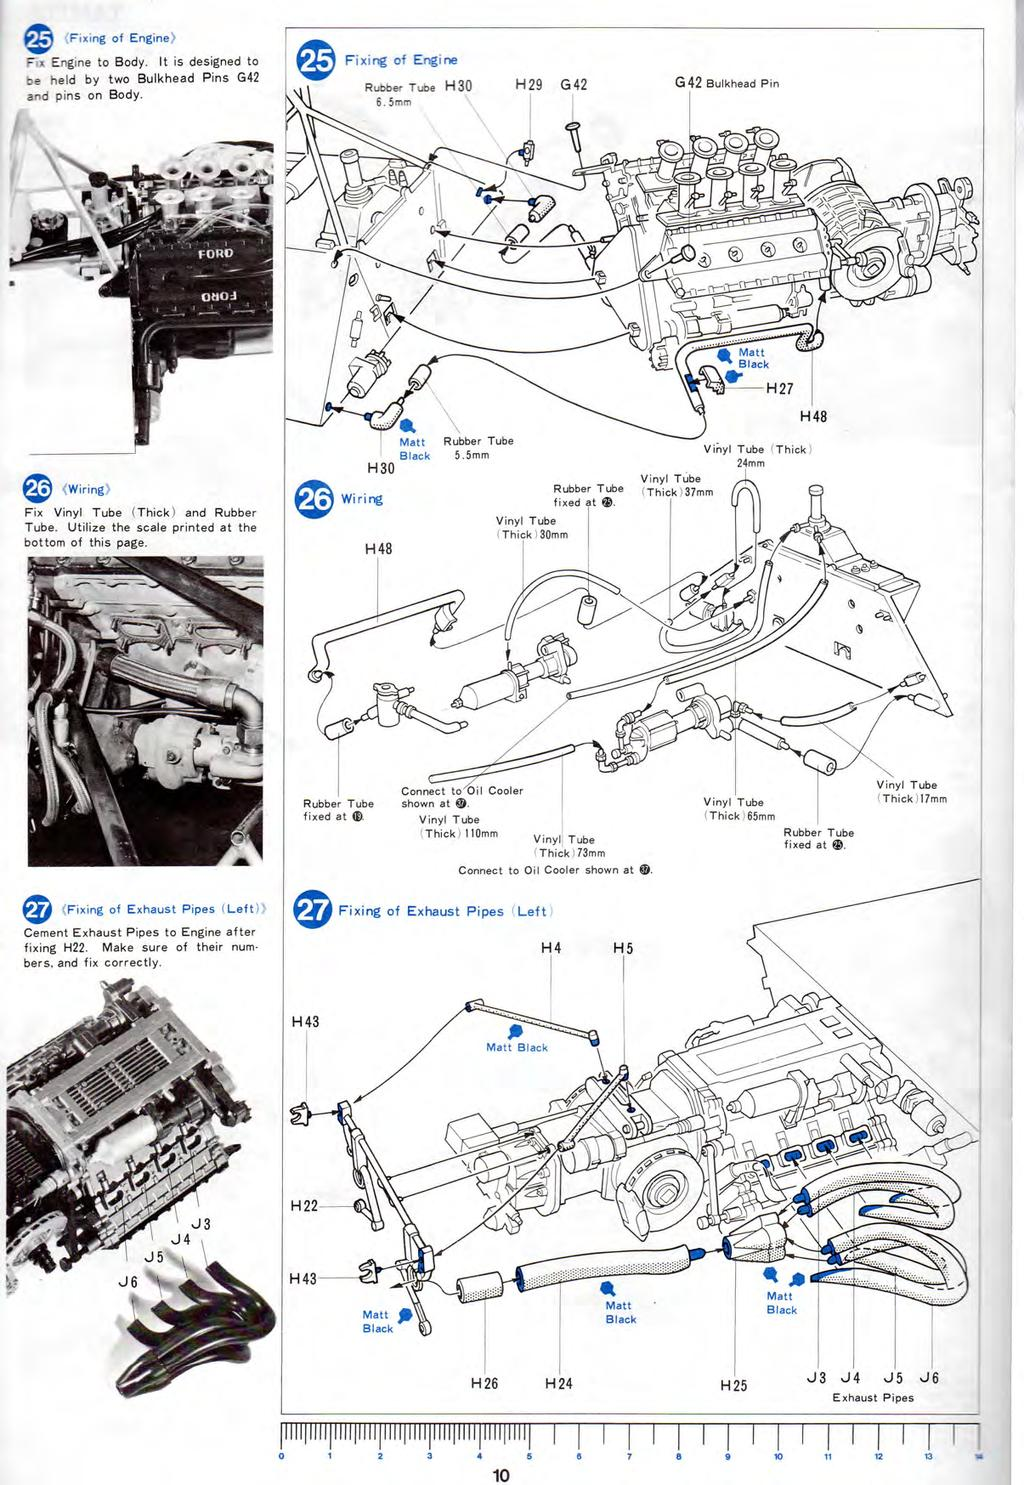 Item Identical Bt44bffi Length 355mm Width 162mm Height 105mm Fig 26wiring Diagram For Complete Sending And Receiving Set No 1 R1 Fixing Of Engine Fix To Body It Is Designed